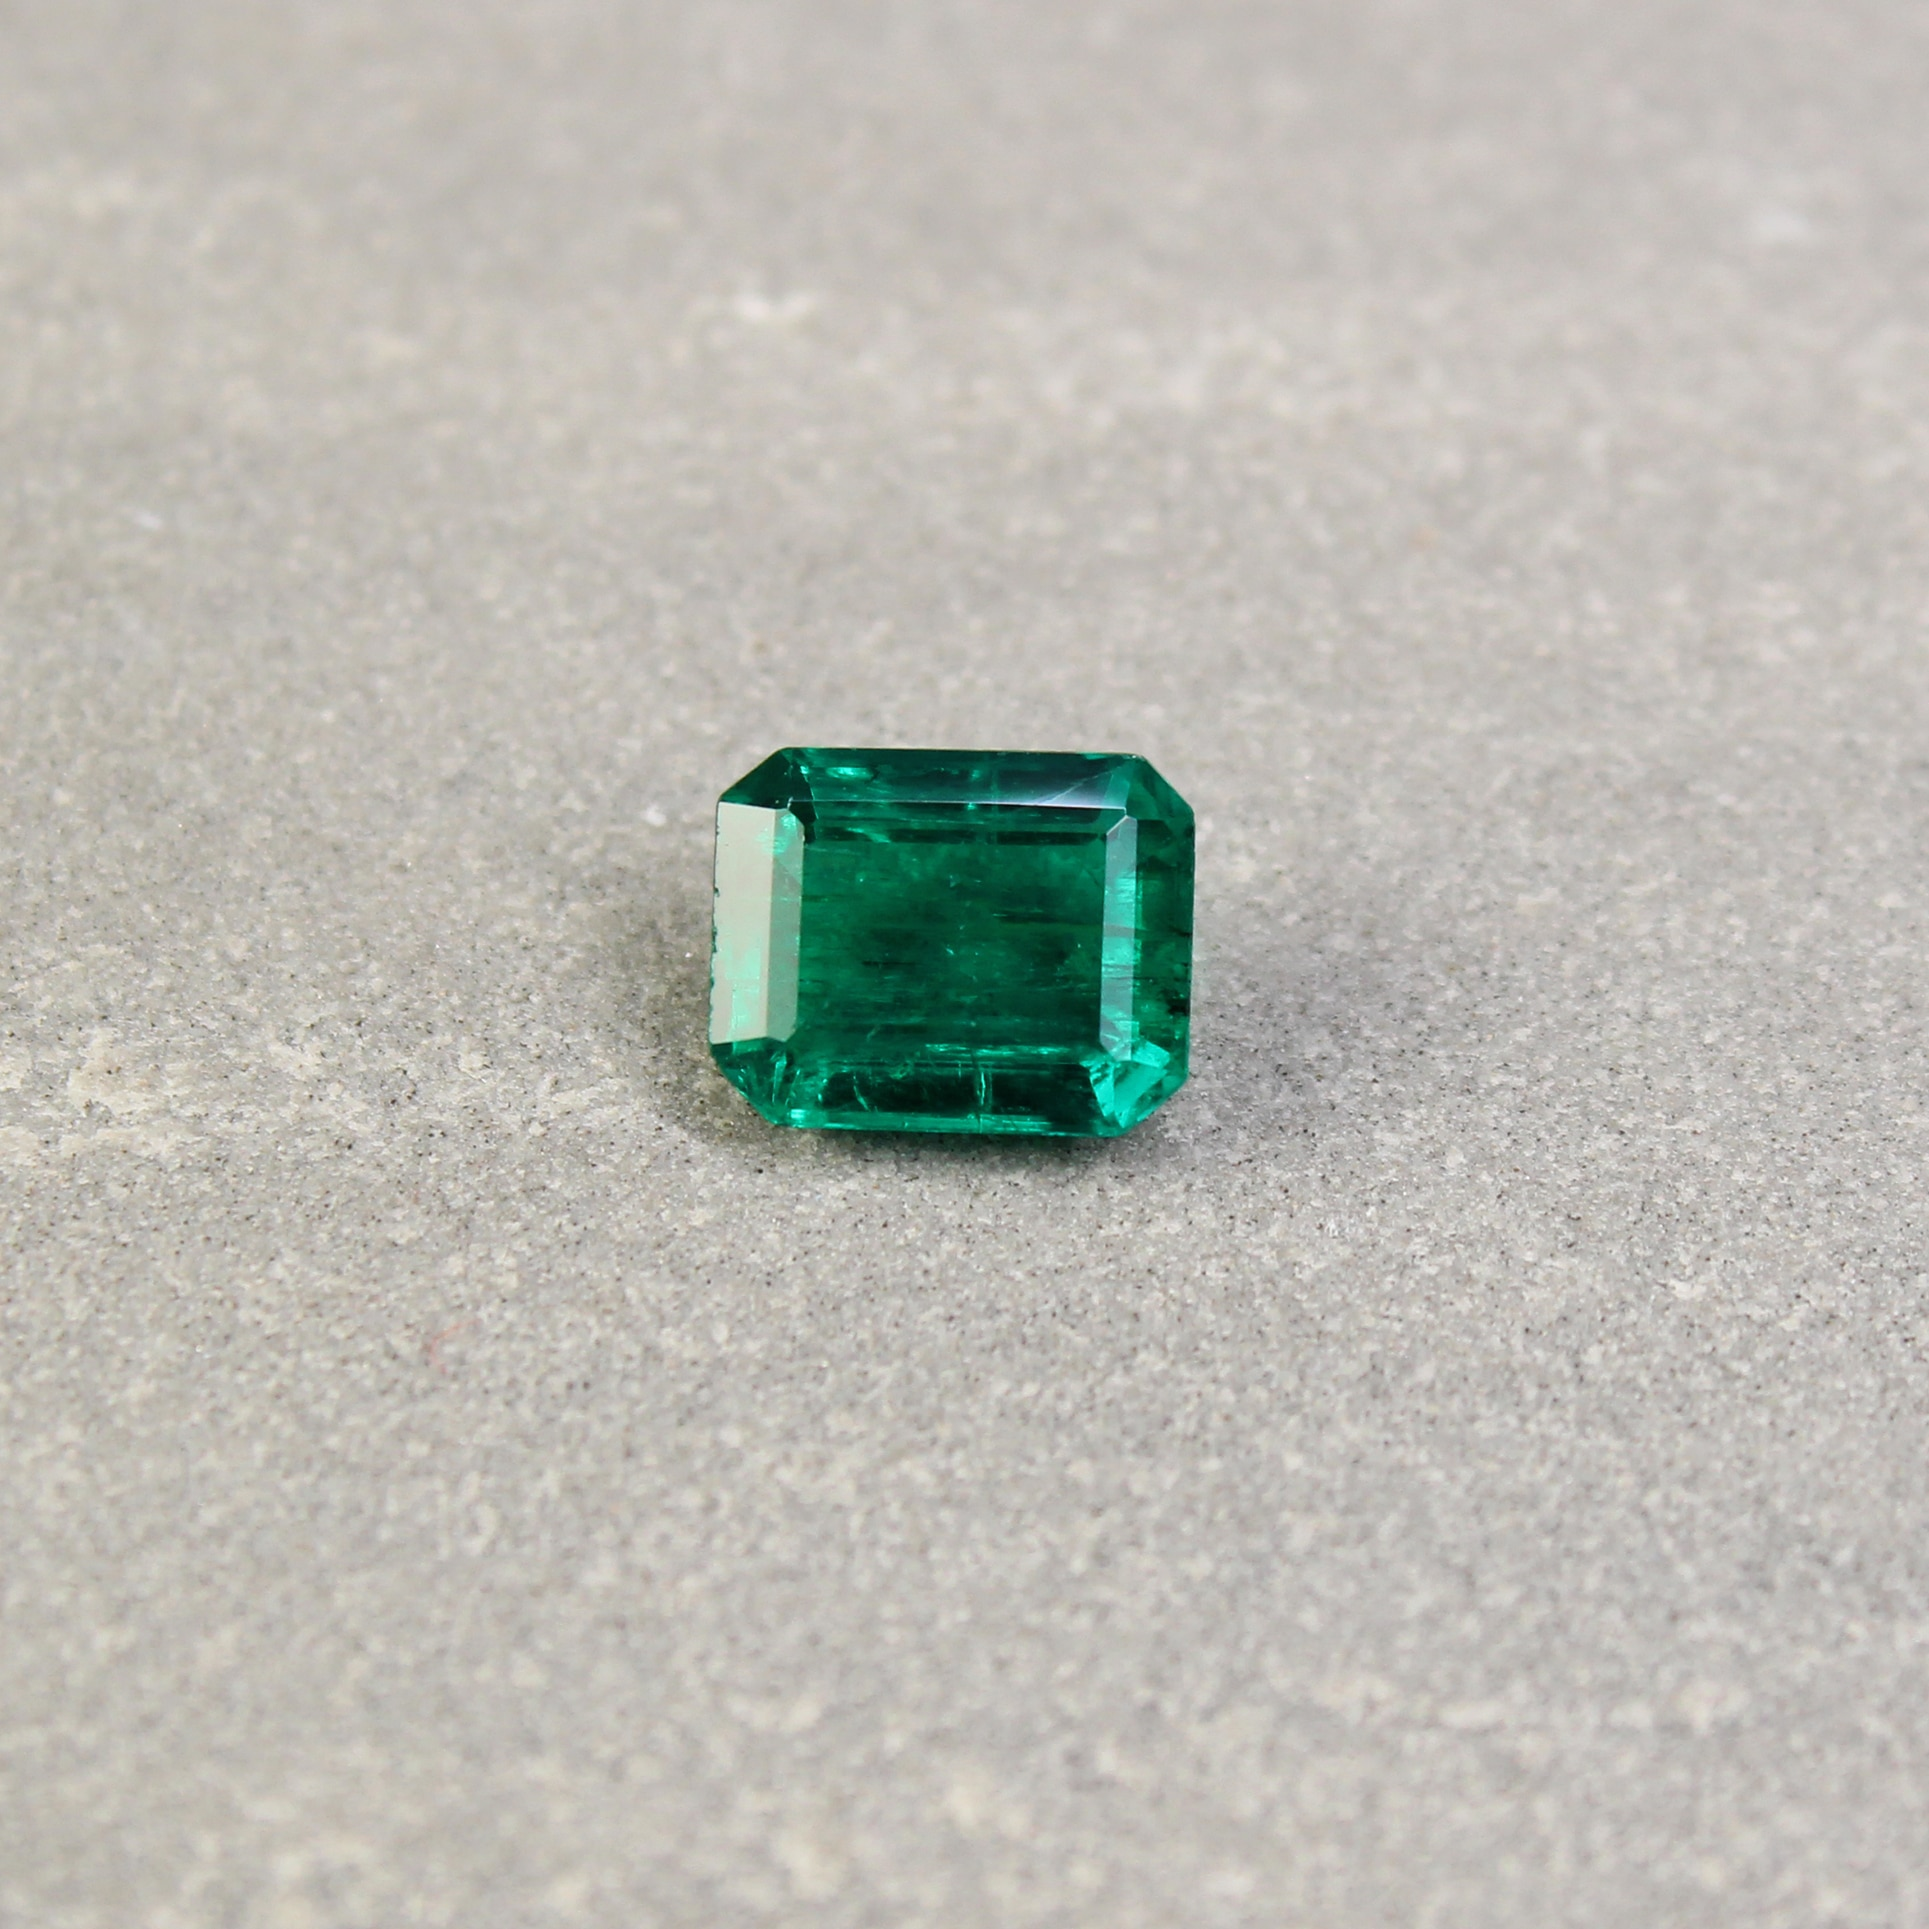 2.41 ct octagon green emerald